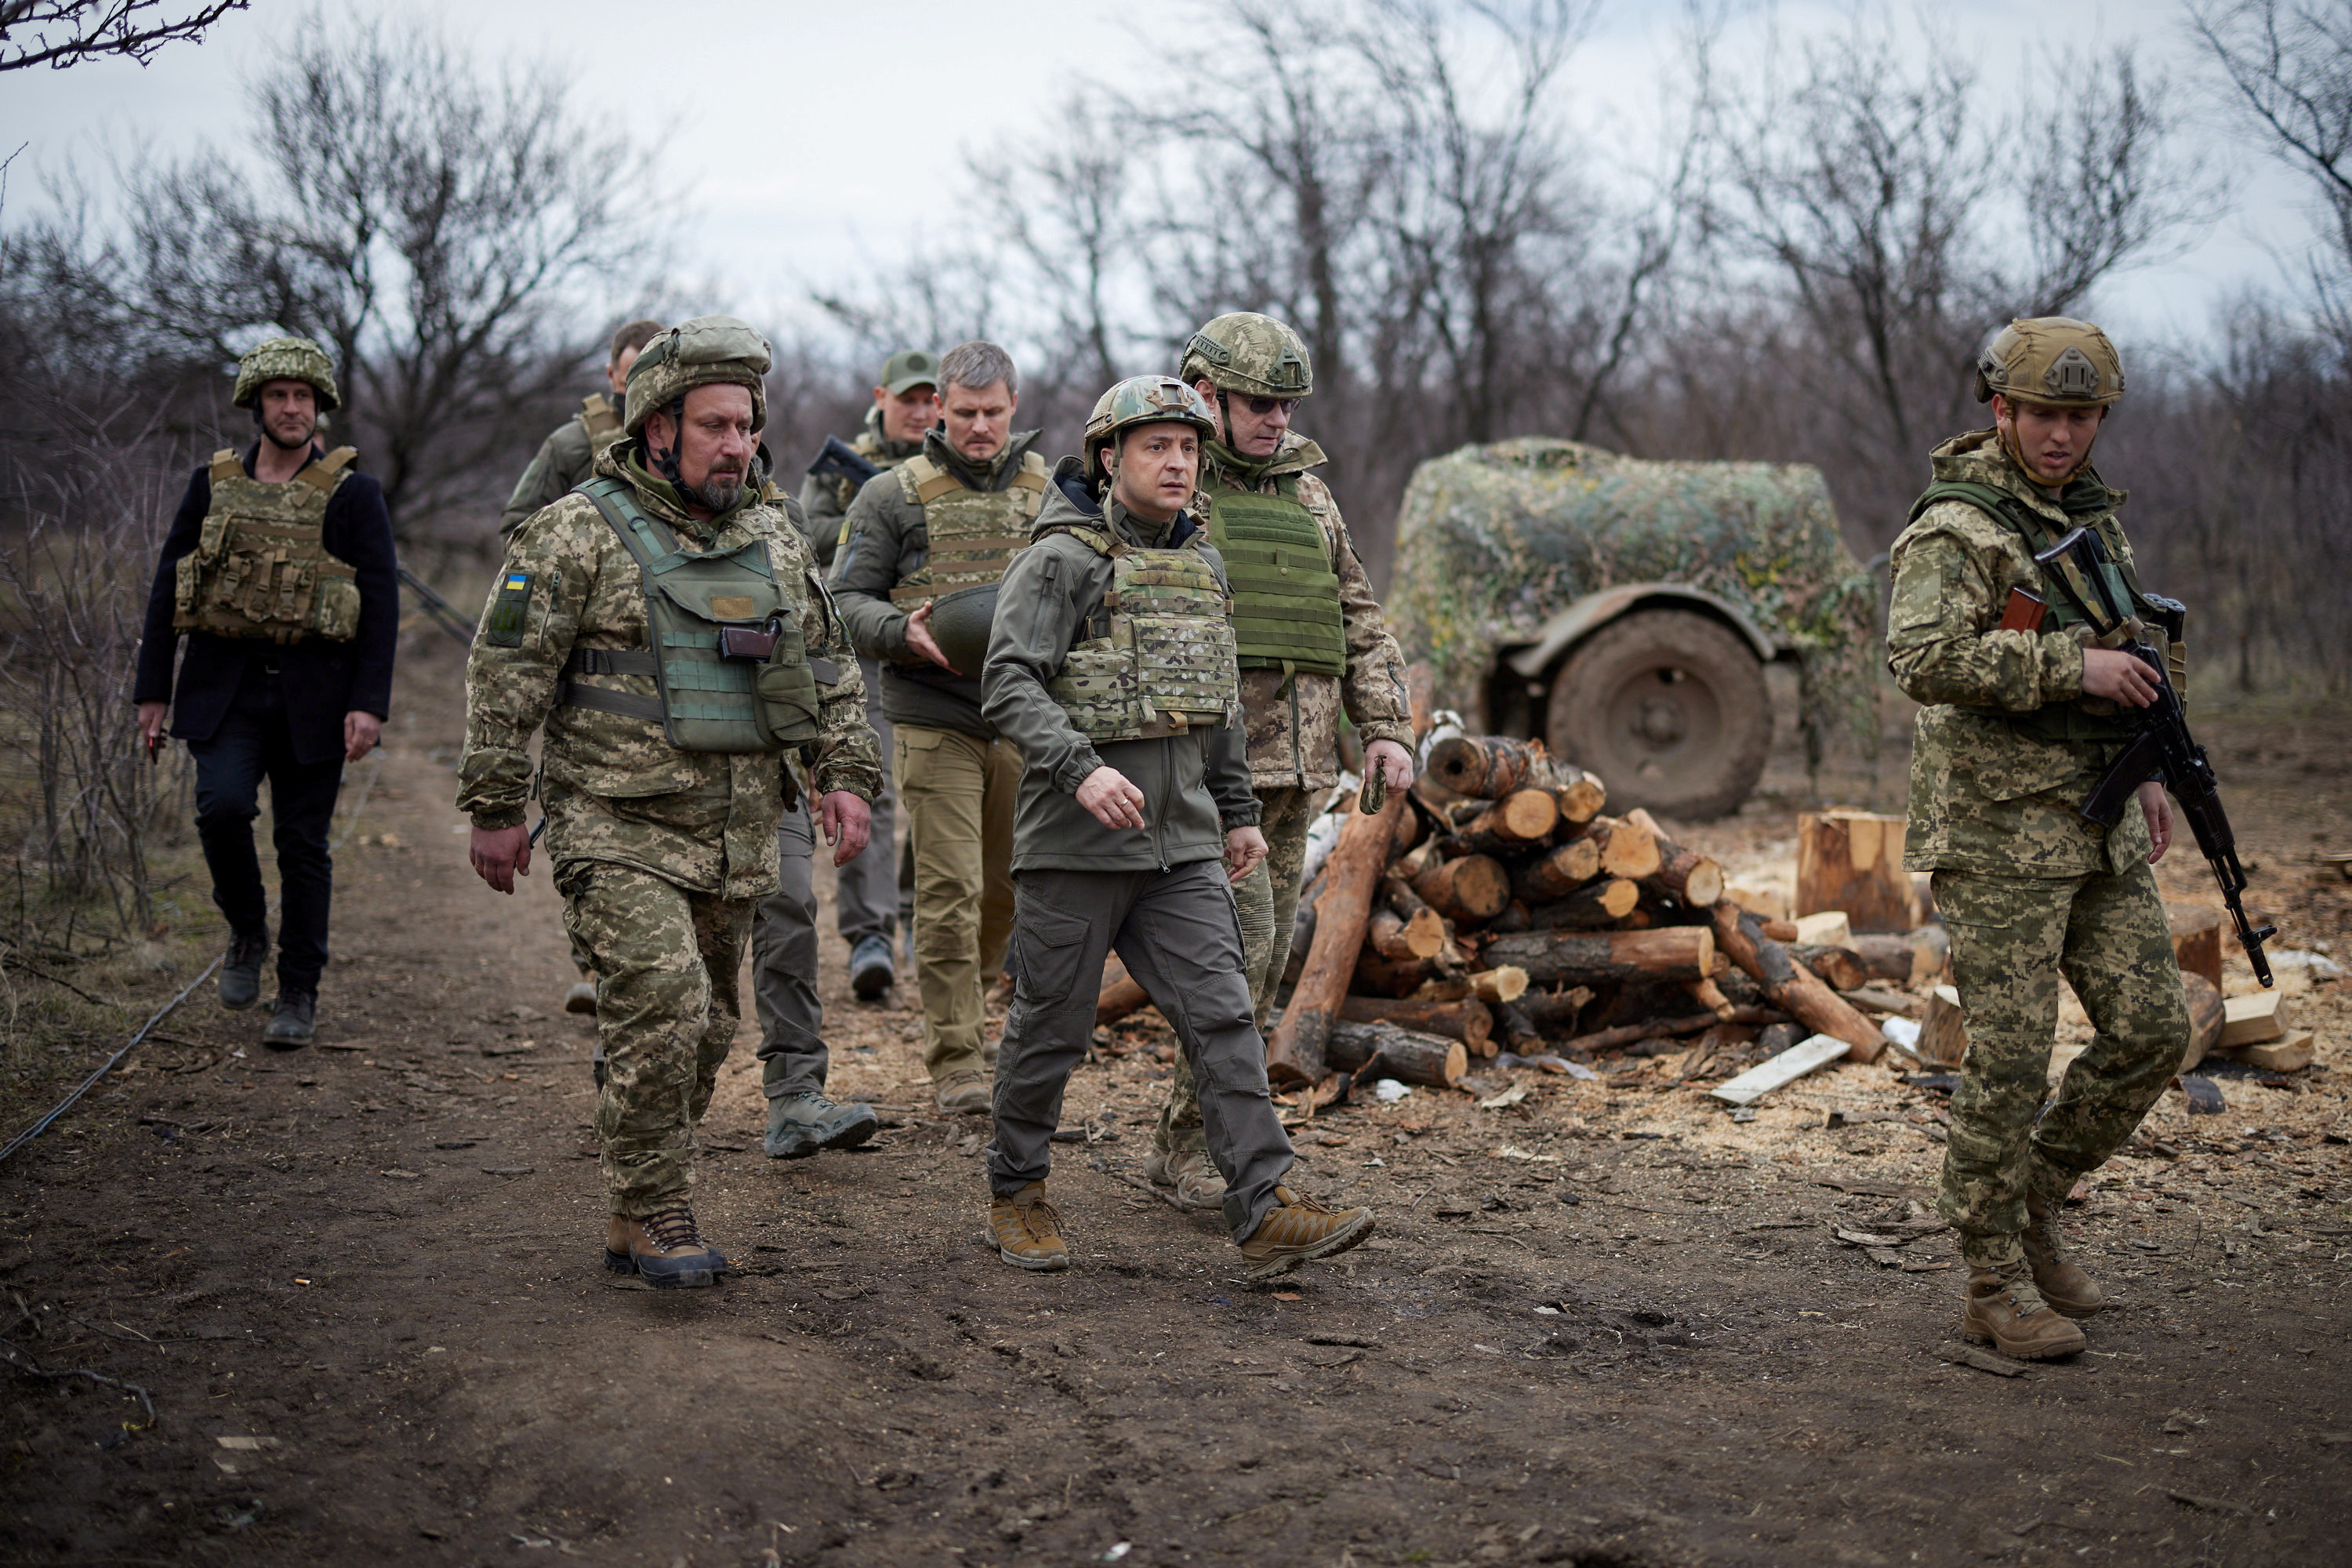 Ukraine's President Volodymyr Zelenskiy visits positions of armed forces near the frontline with Russian-backed separatists during his working trip in Donbass region, Ukraine April 8, 2021. Ukrainian Presidential Press Service/Handout via REUTERS